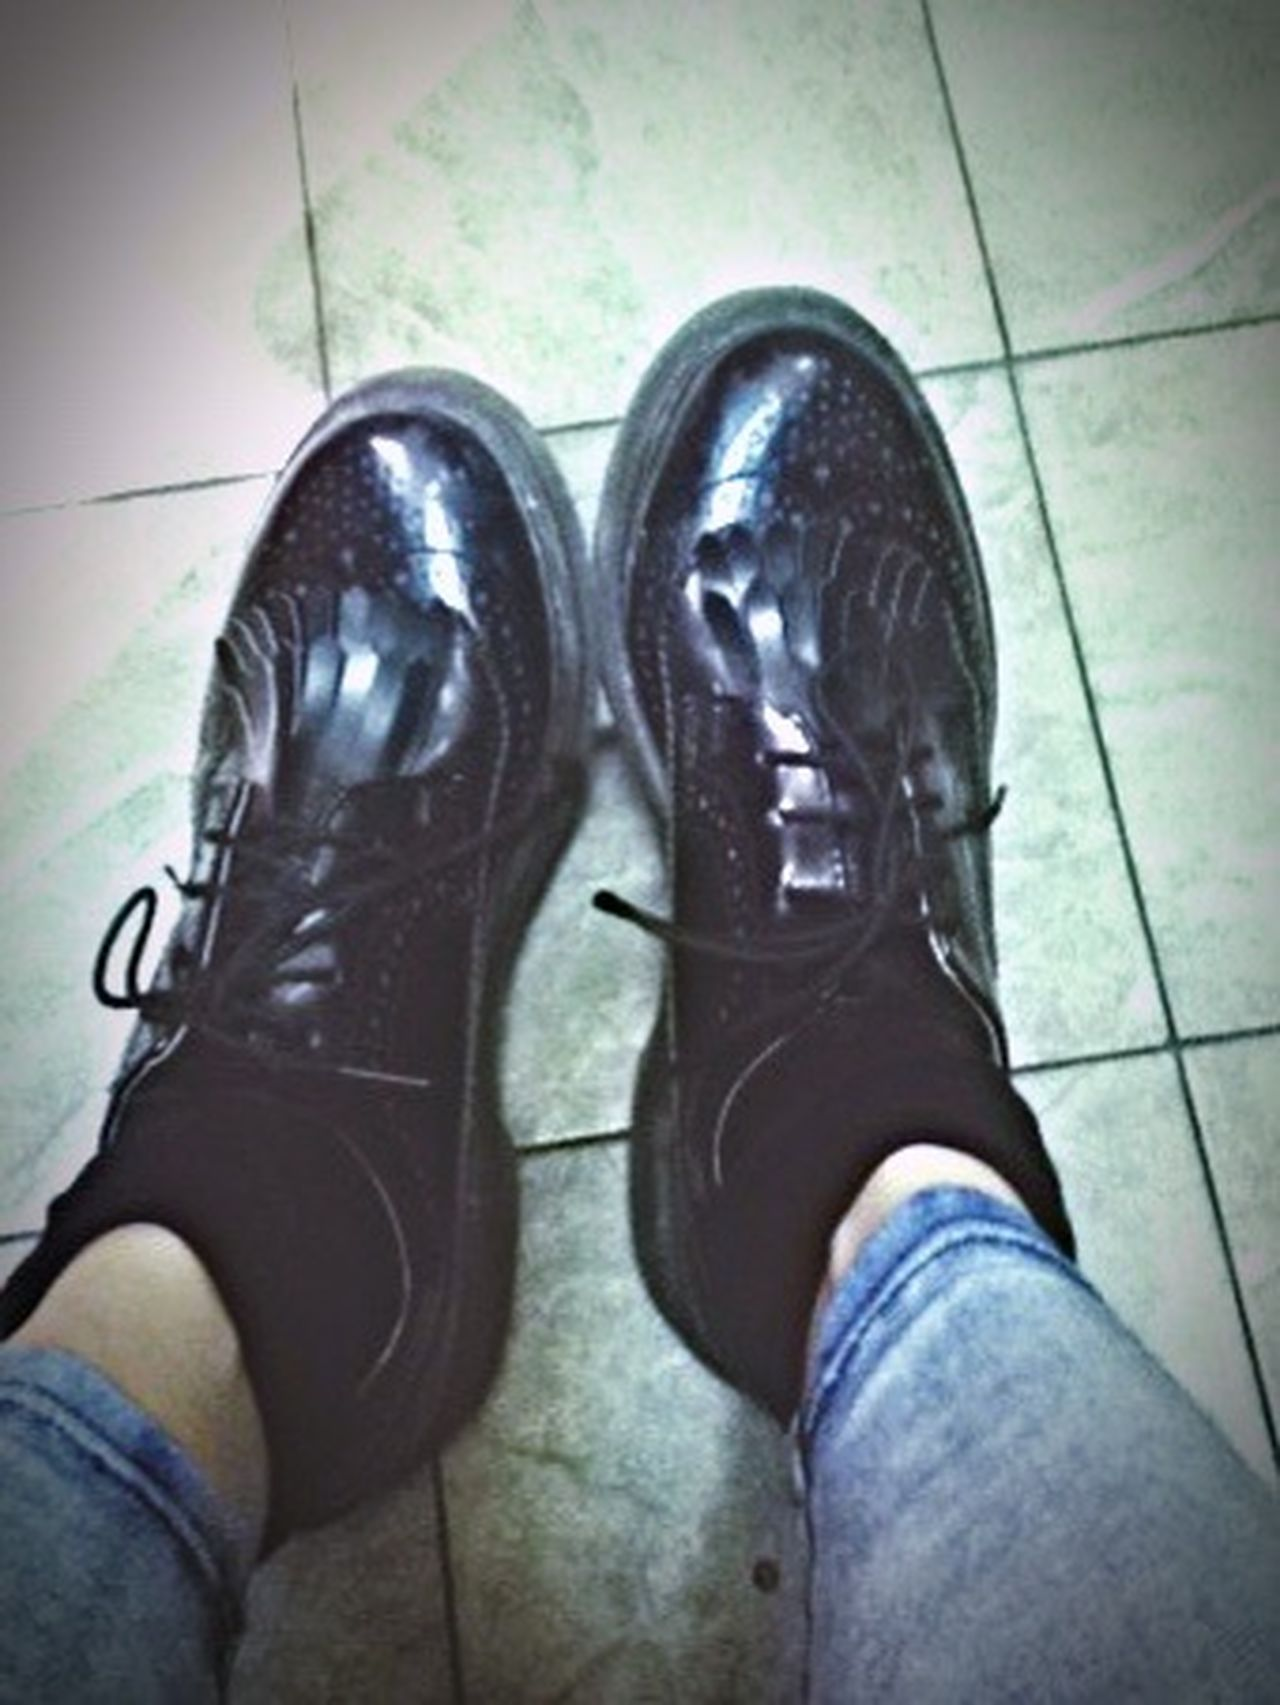 Love My Shoes Shoes Paris Shoes Relaxing Relax